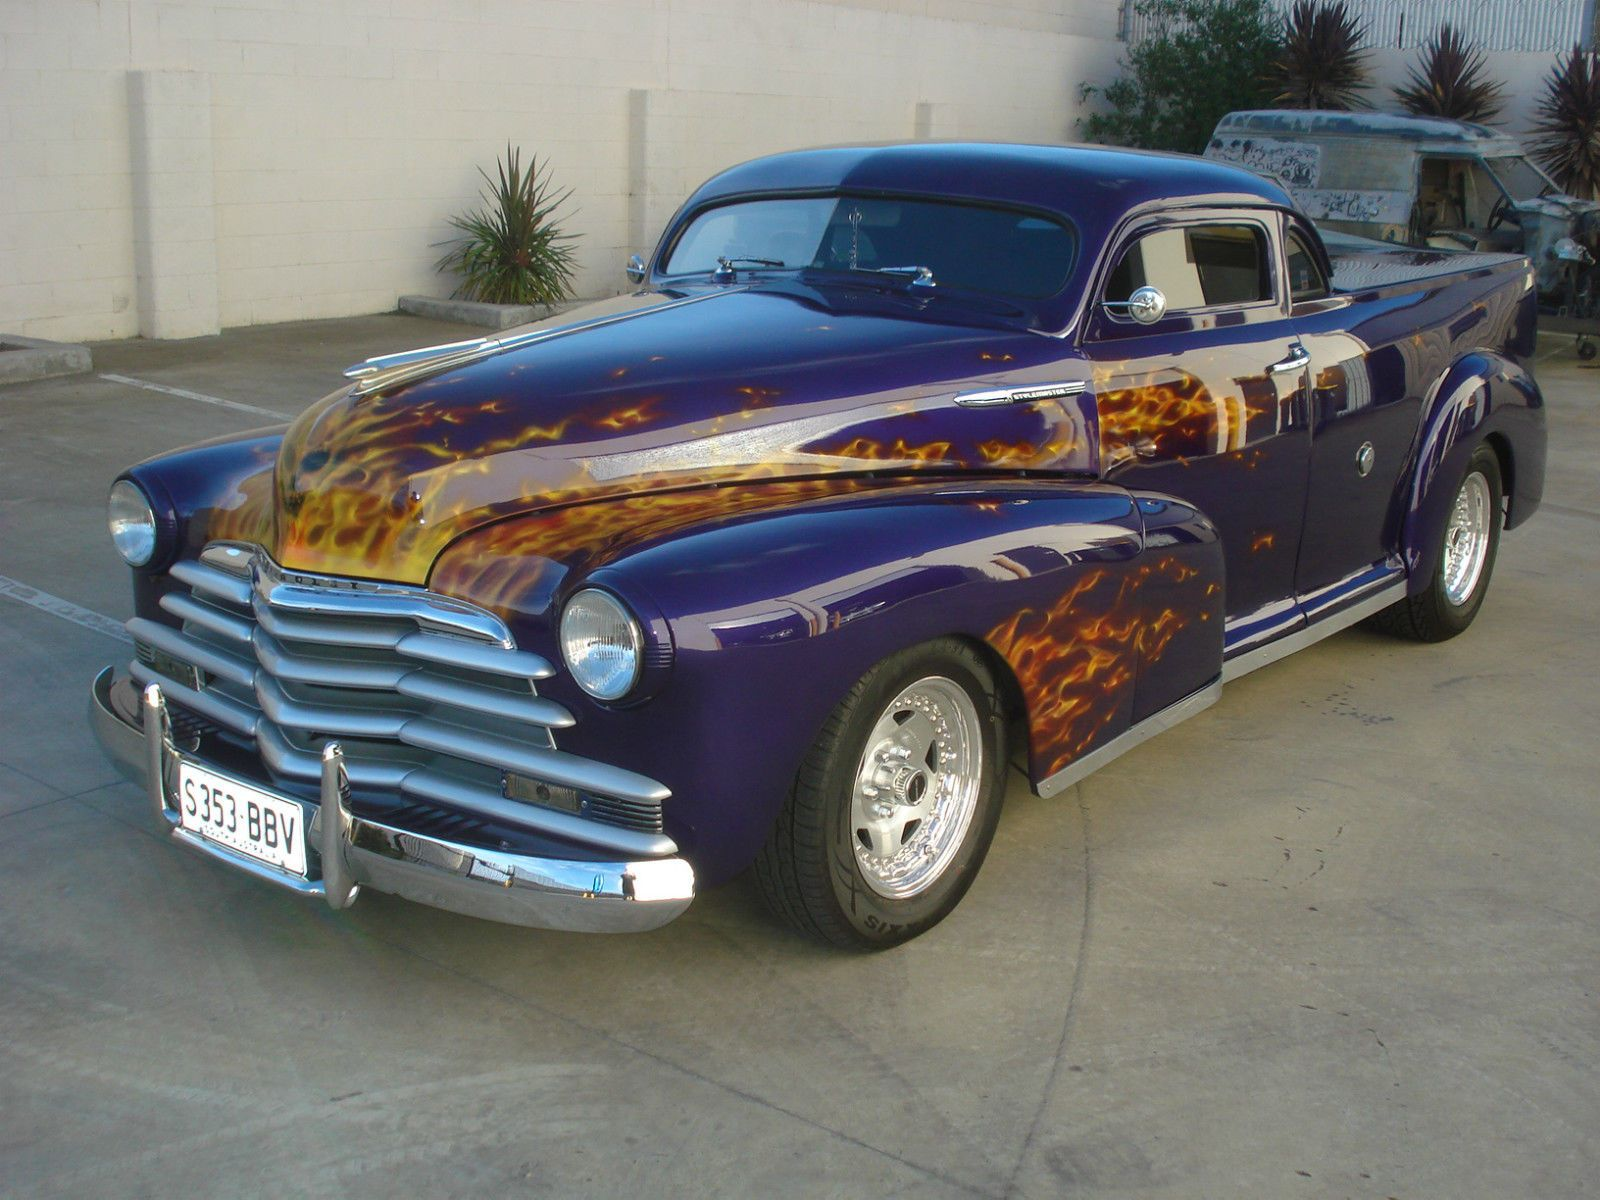 1947 Chev Coupe Ute hot rod. Mounted on a Holden 1 tonne